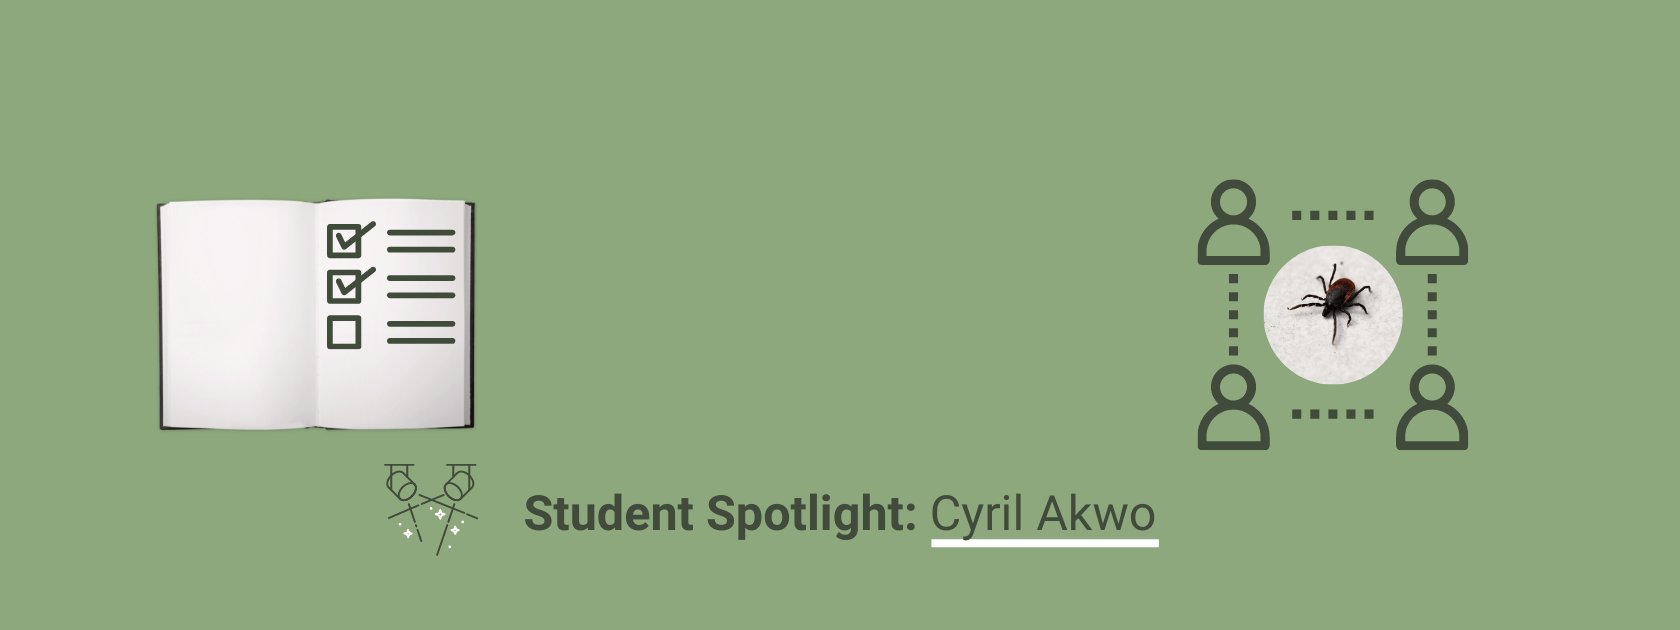 A banner announcing the new Student Spotlight article on Cyril Akwo. A photo of an open book with a checklist on its page sits on the left side of the banner while the image on the right depicts four people aligned in the shape of a square surrounding a photo of a tick.